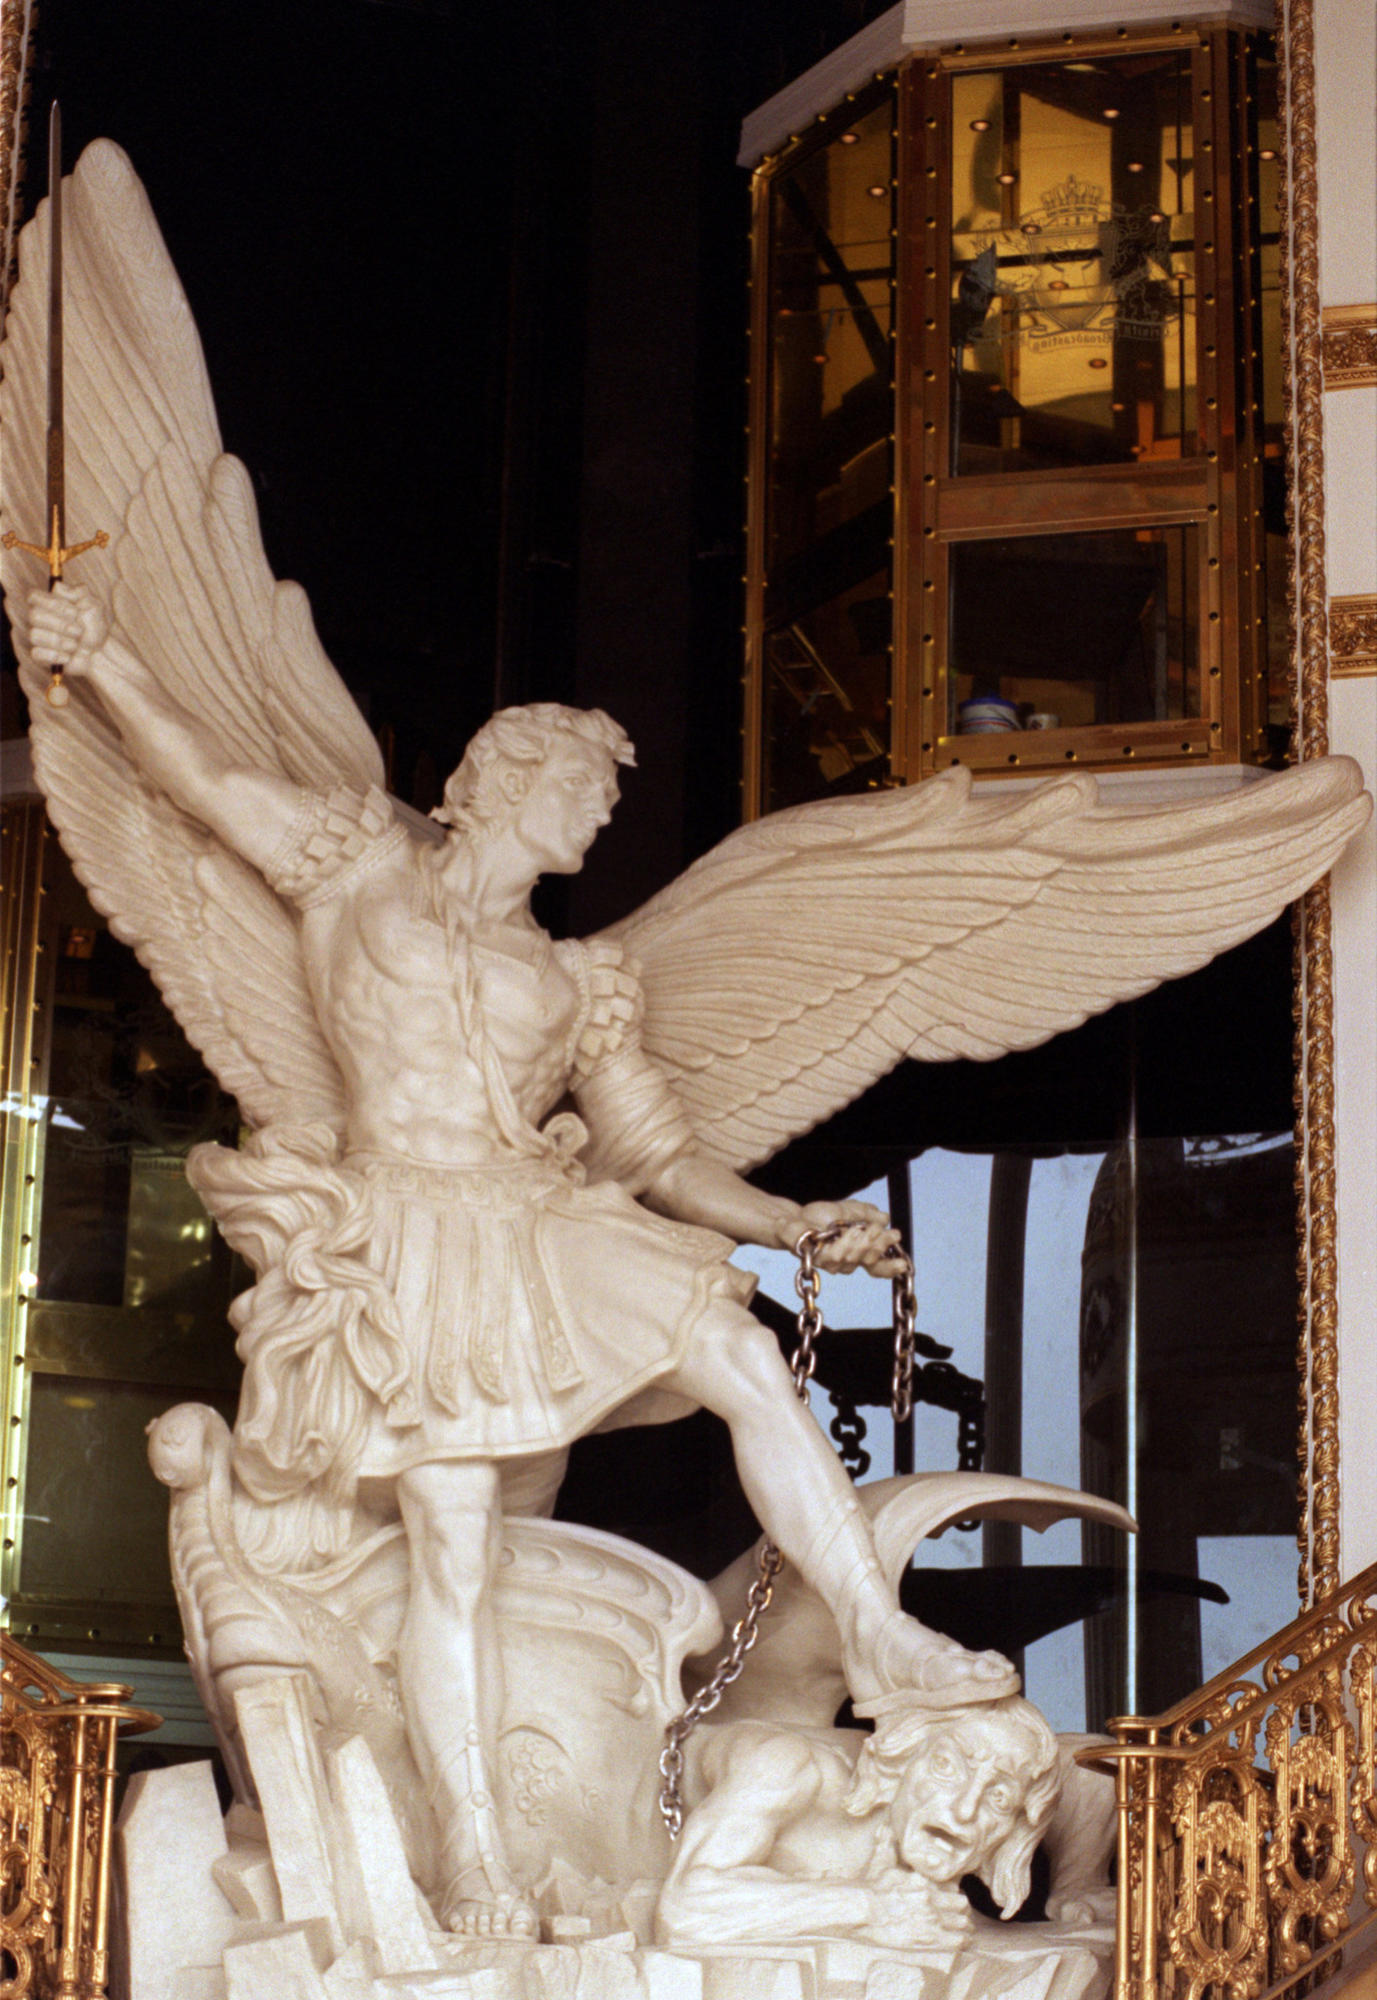 TBN headquarter's entrance features an elaborate 15–foot statue depicting satan being thrown into hell by an angel, behind is a gold and glass elevator.